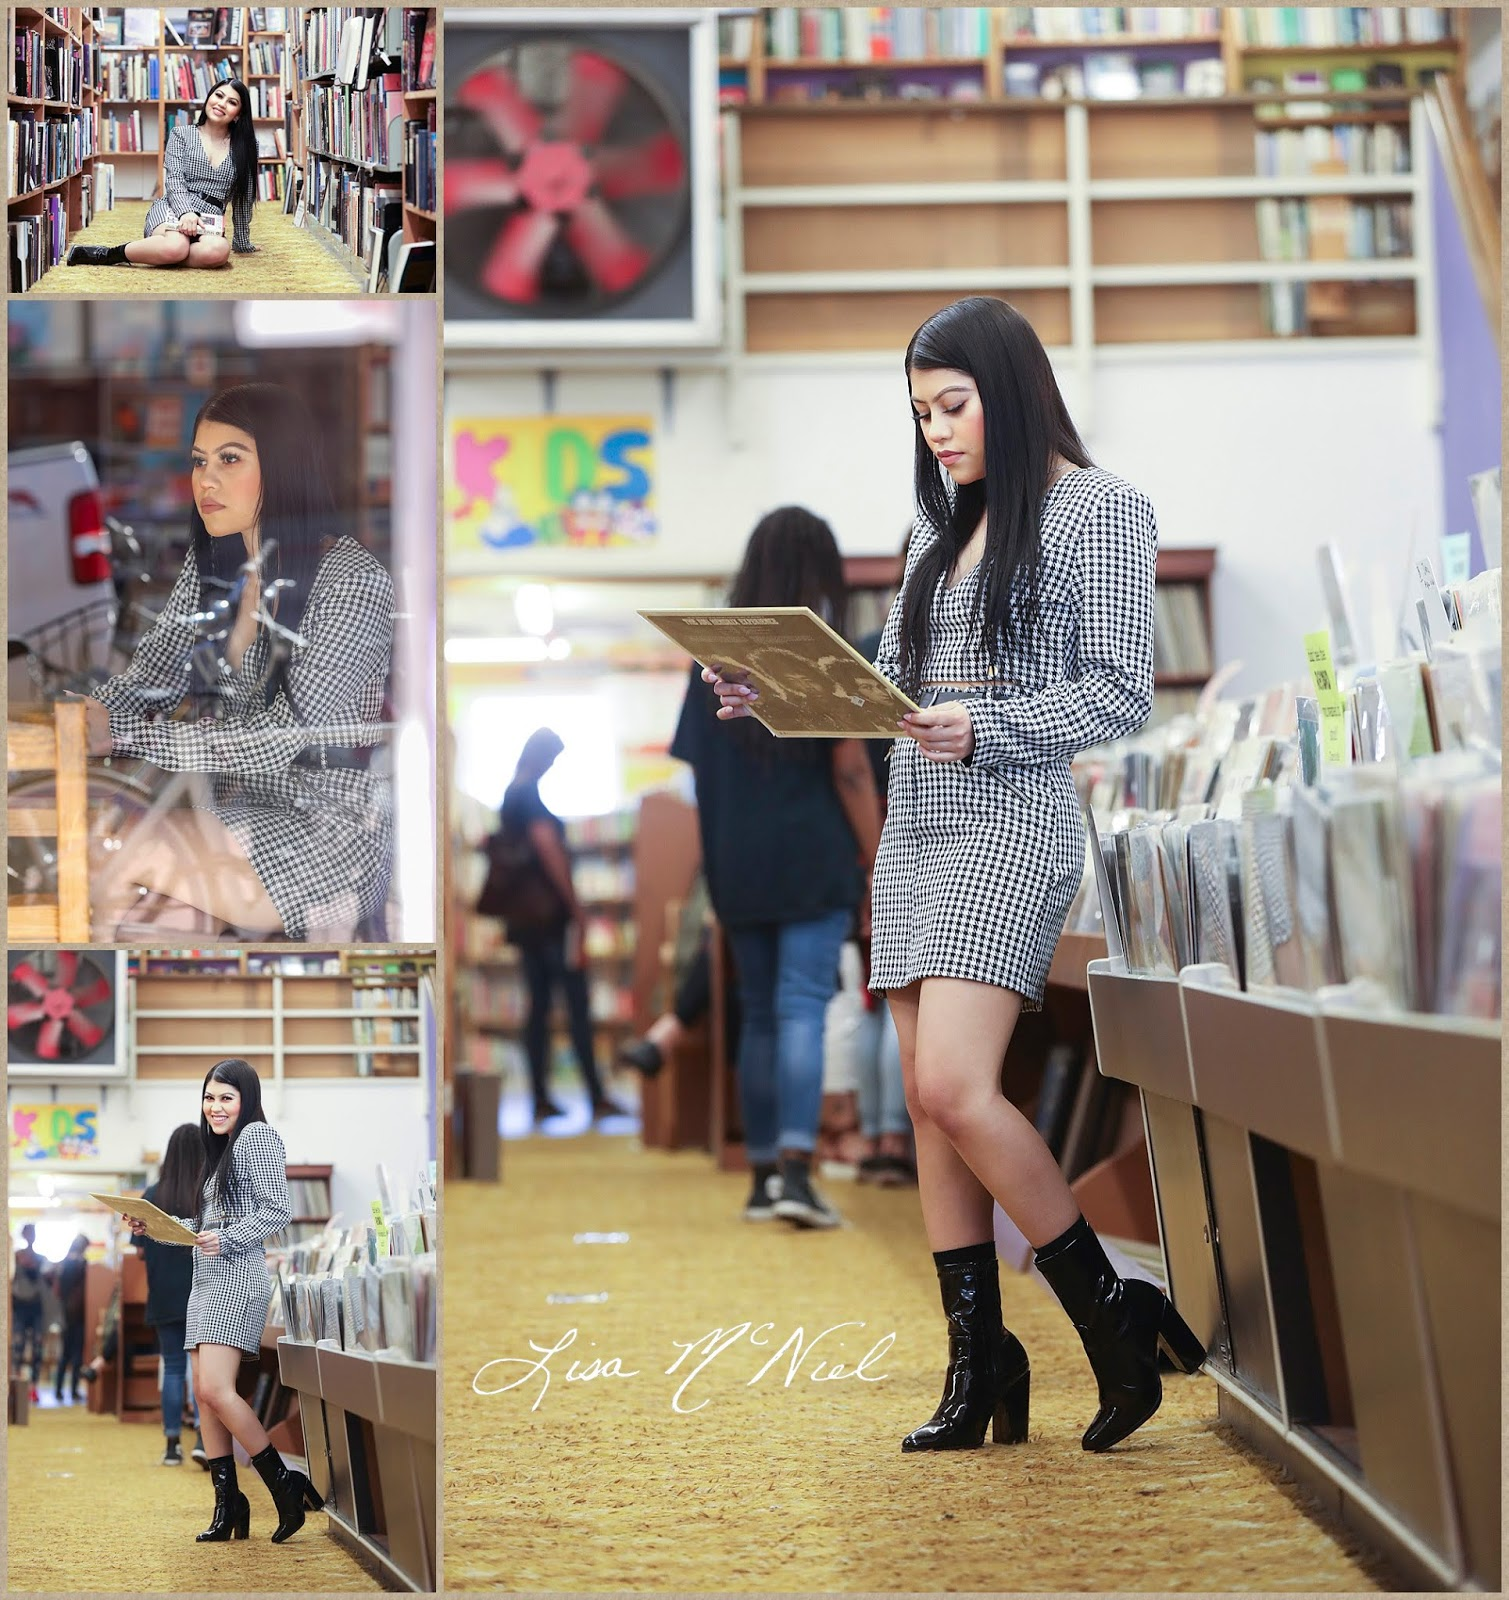 Girl in vintage book store with vinyl